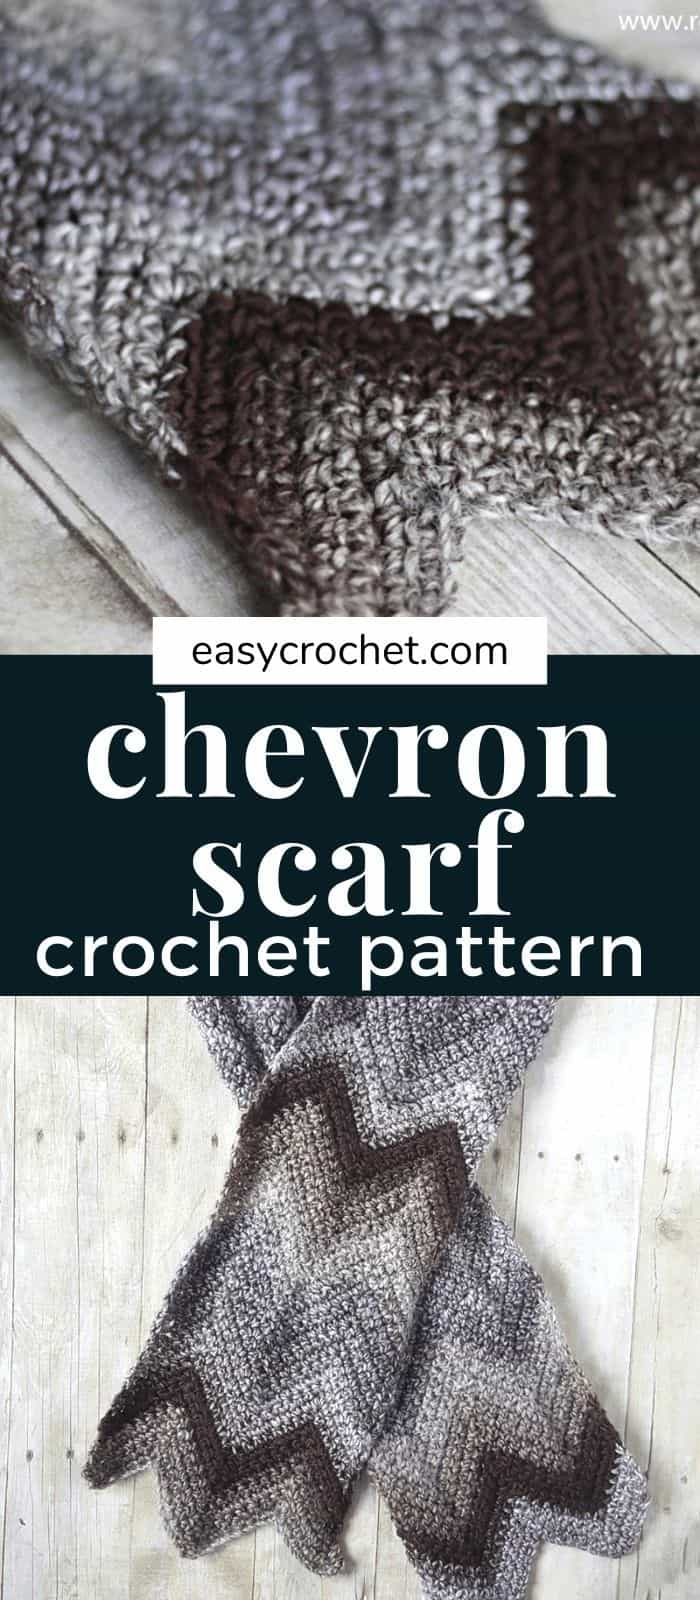 Free Chevron Scarf Crochet Pattern that is simple and fast to work up! via @easycrochetcom